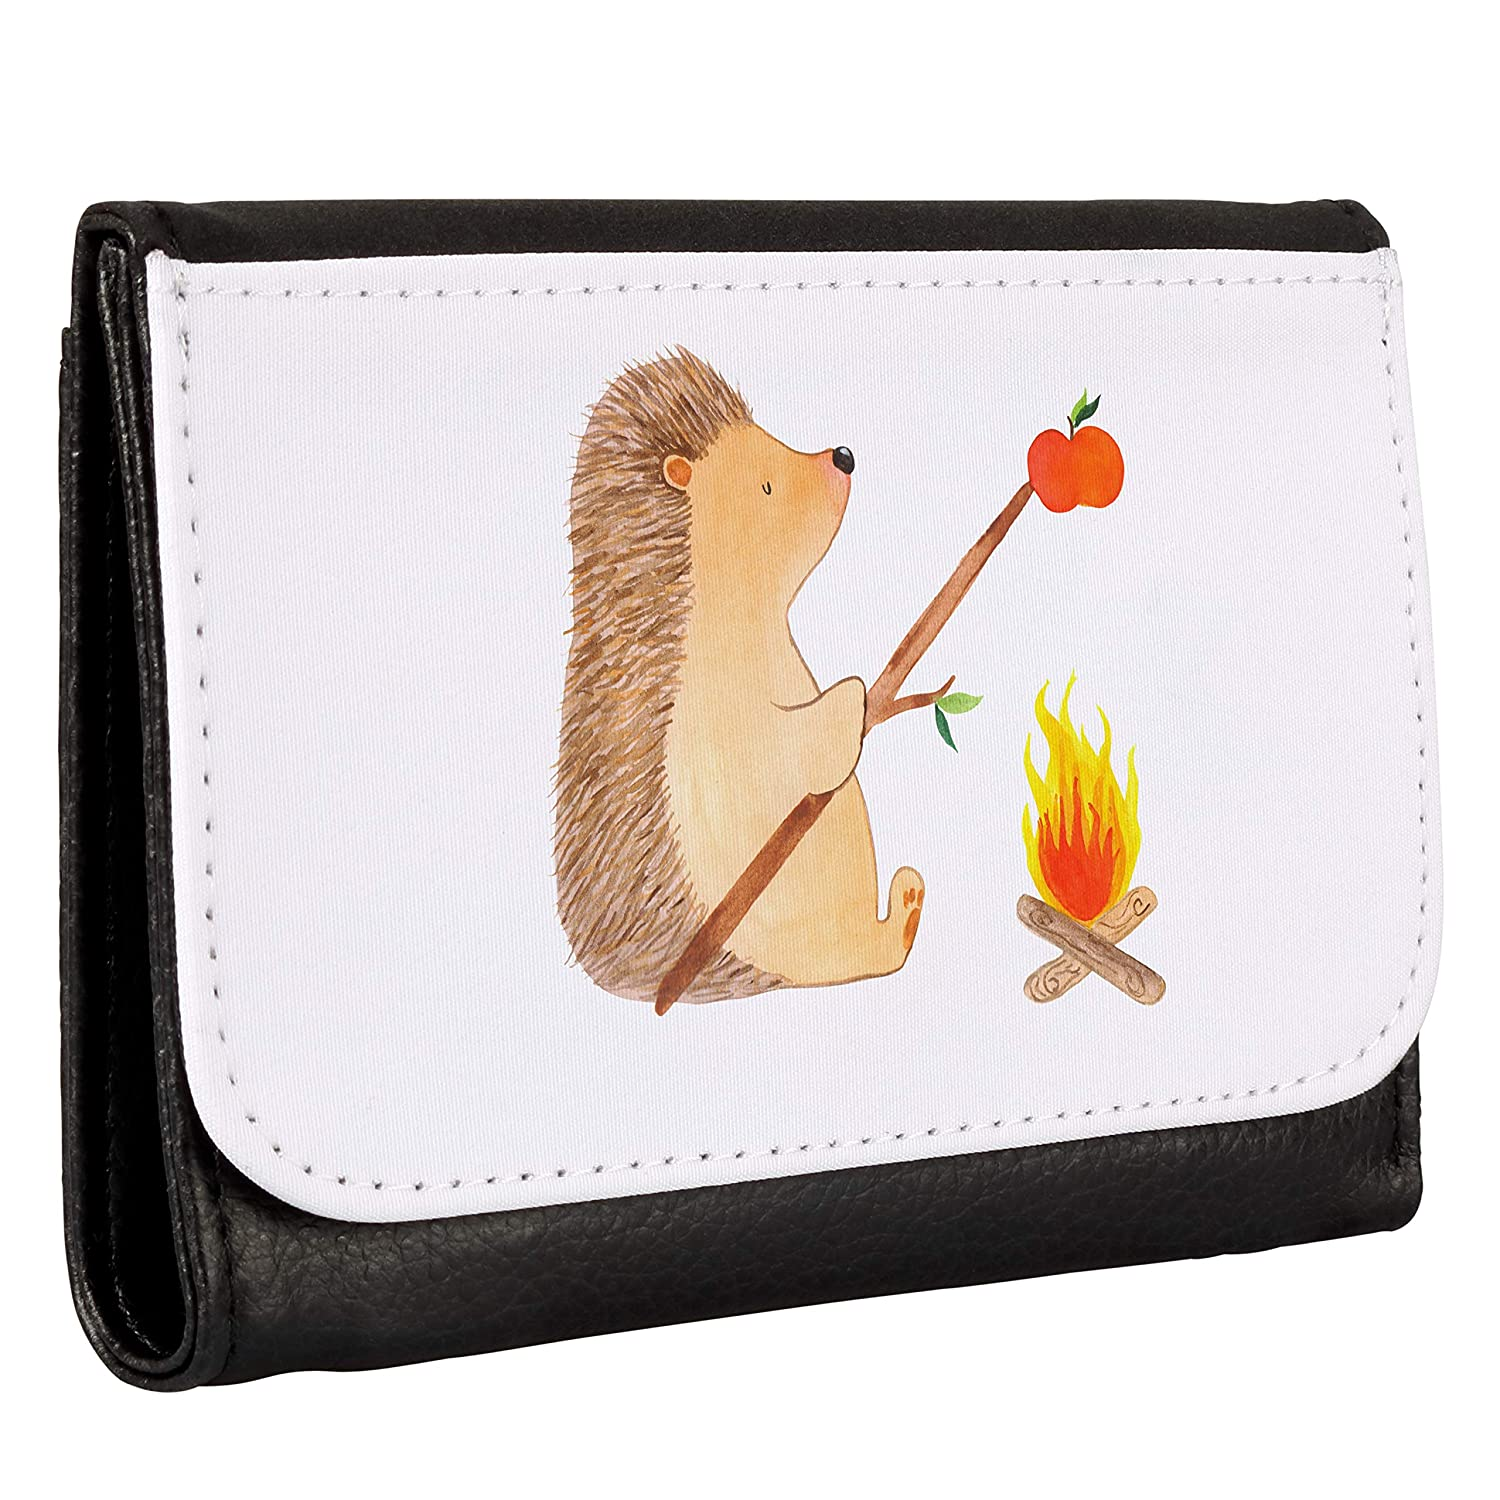 Mr. & Mrs. Panda Igel grillt - Cartera para Hombre, Color ...